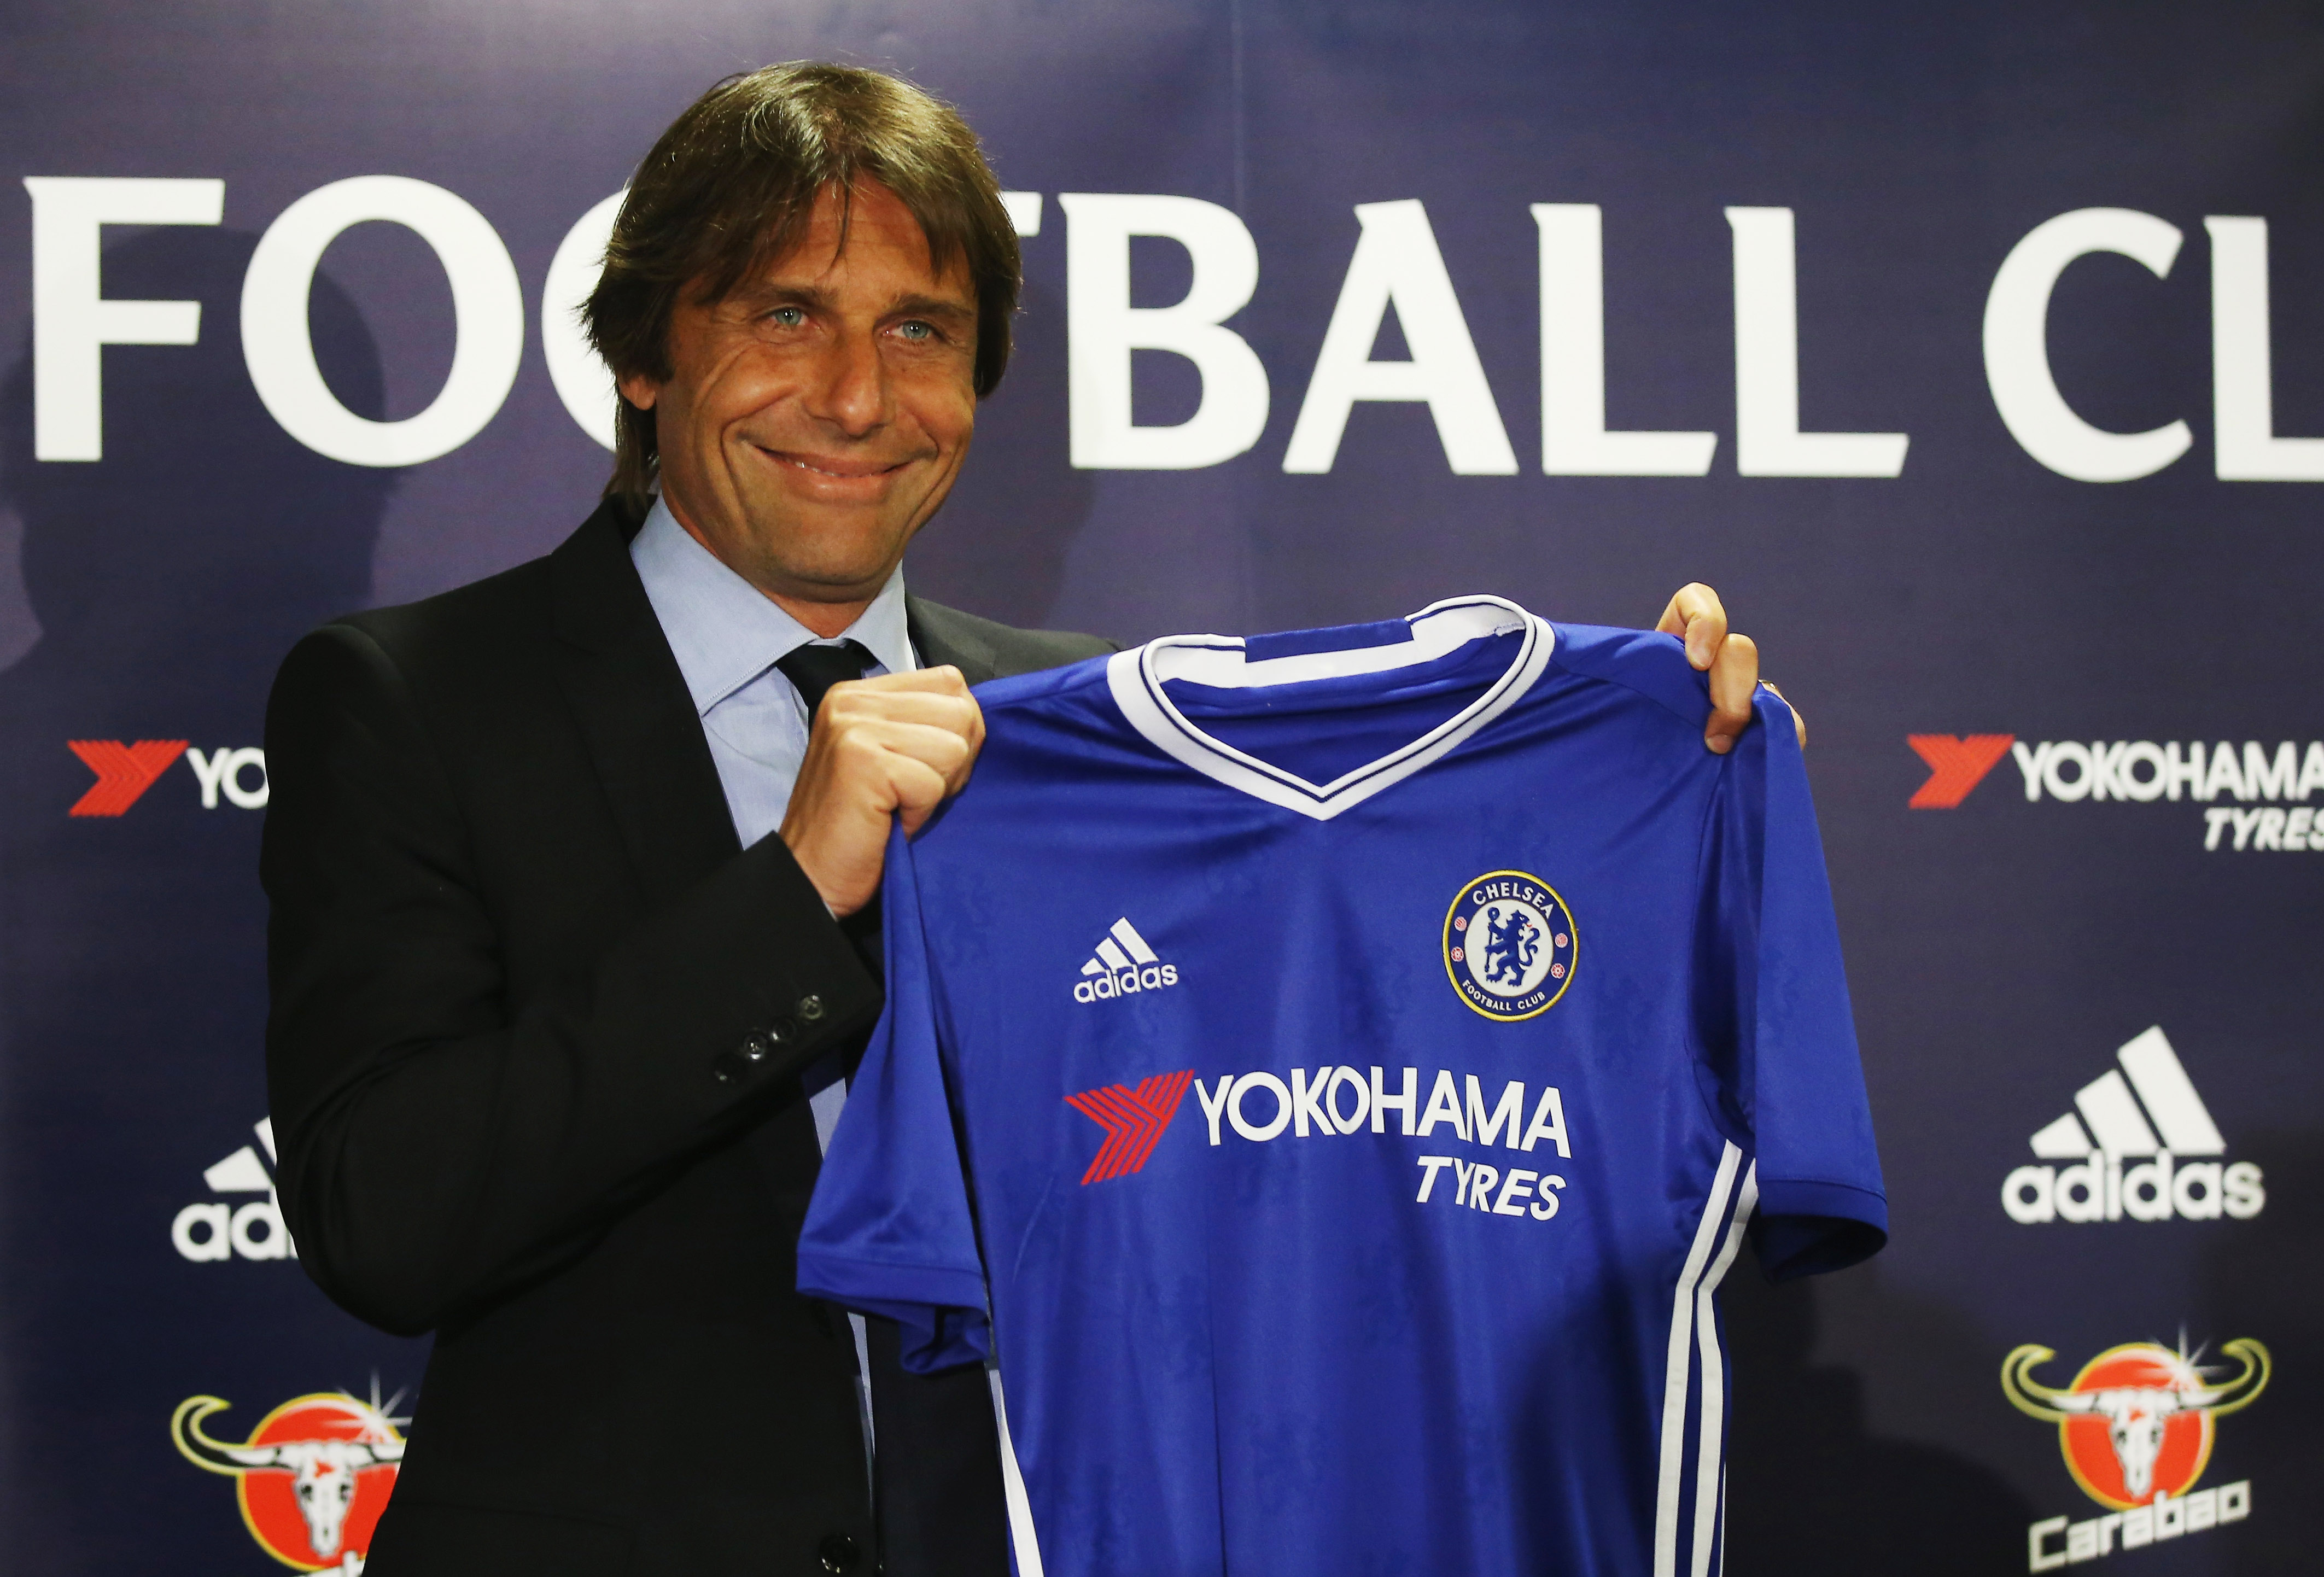 Conte vs. Chelsea arbitration hearing to start today